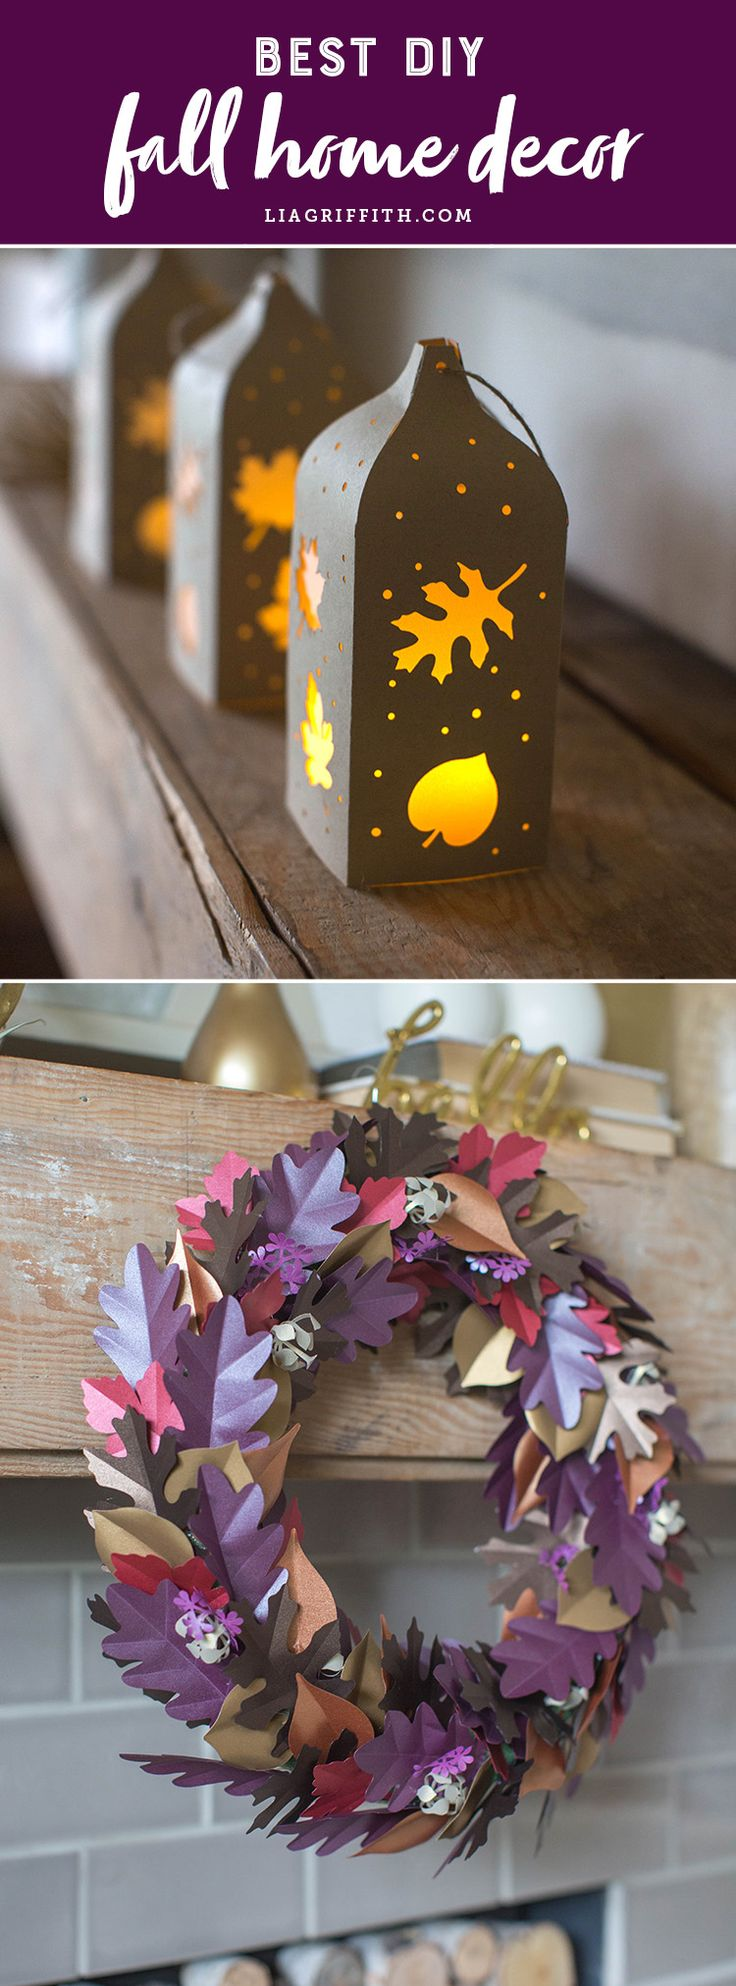 Our 10 Favorite Fall Decor DIYs - www.liagriffith.com #diyfalldecor #diyhomedecor #diyinspiration #diyproject #diyprojects #diyidea #diyideas #madewithlia